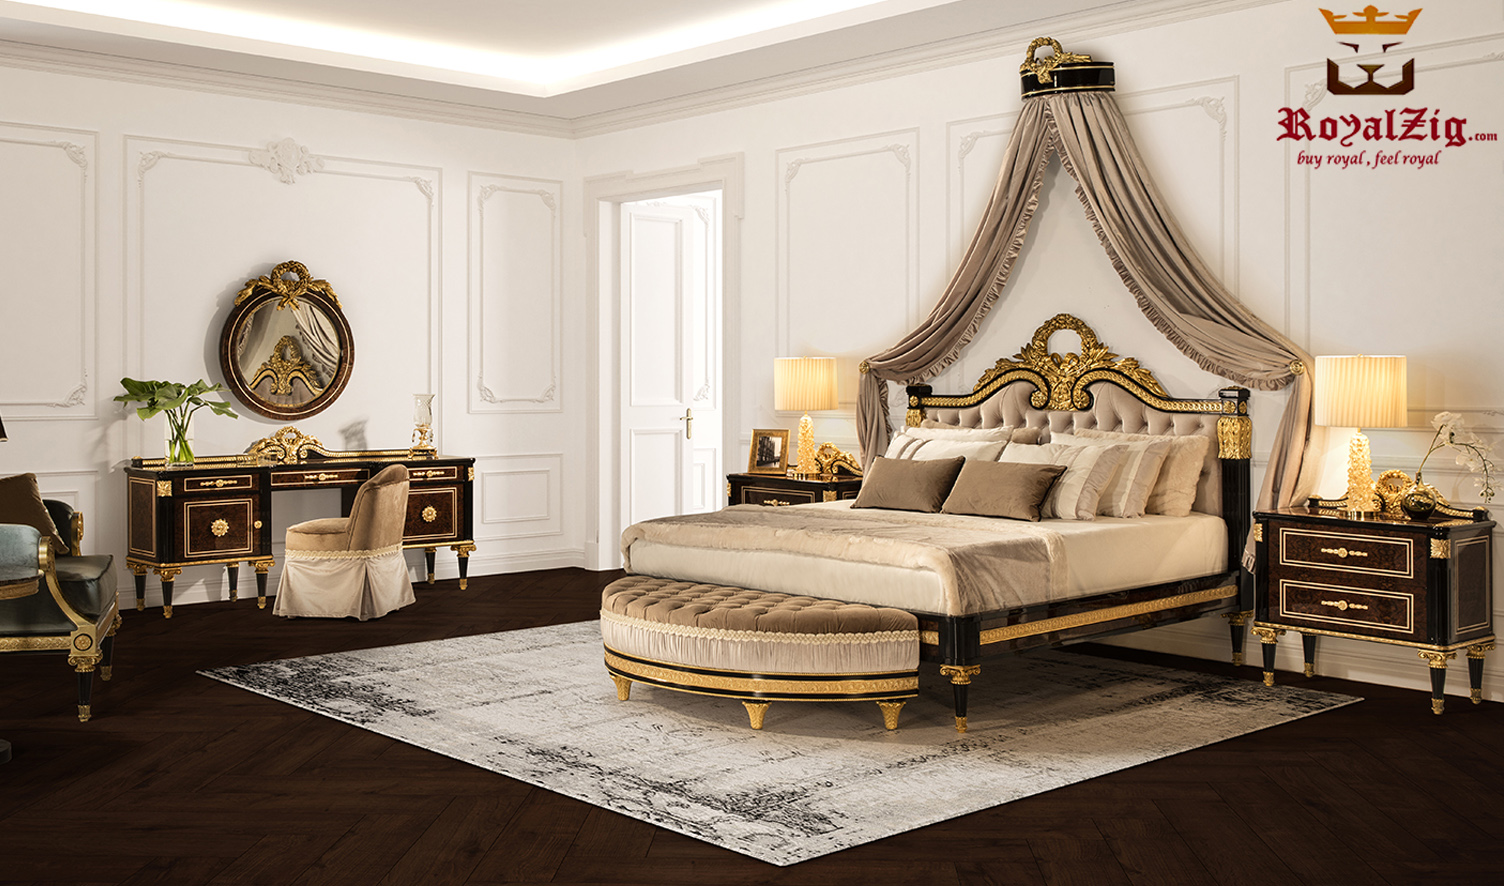 Bed And Bedroom Wooden Furniture Set Online India